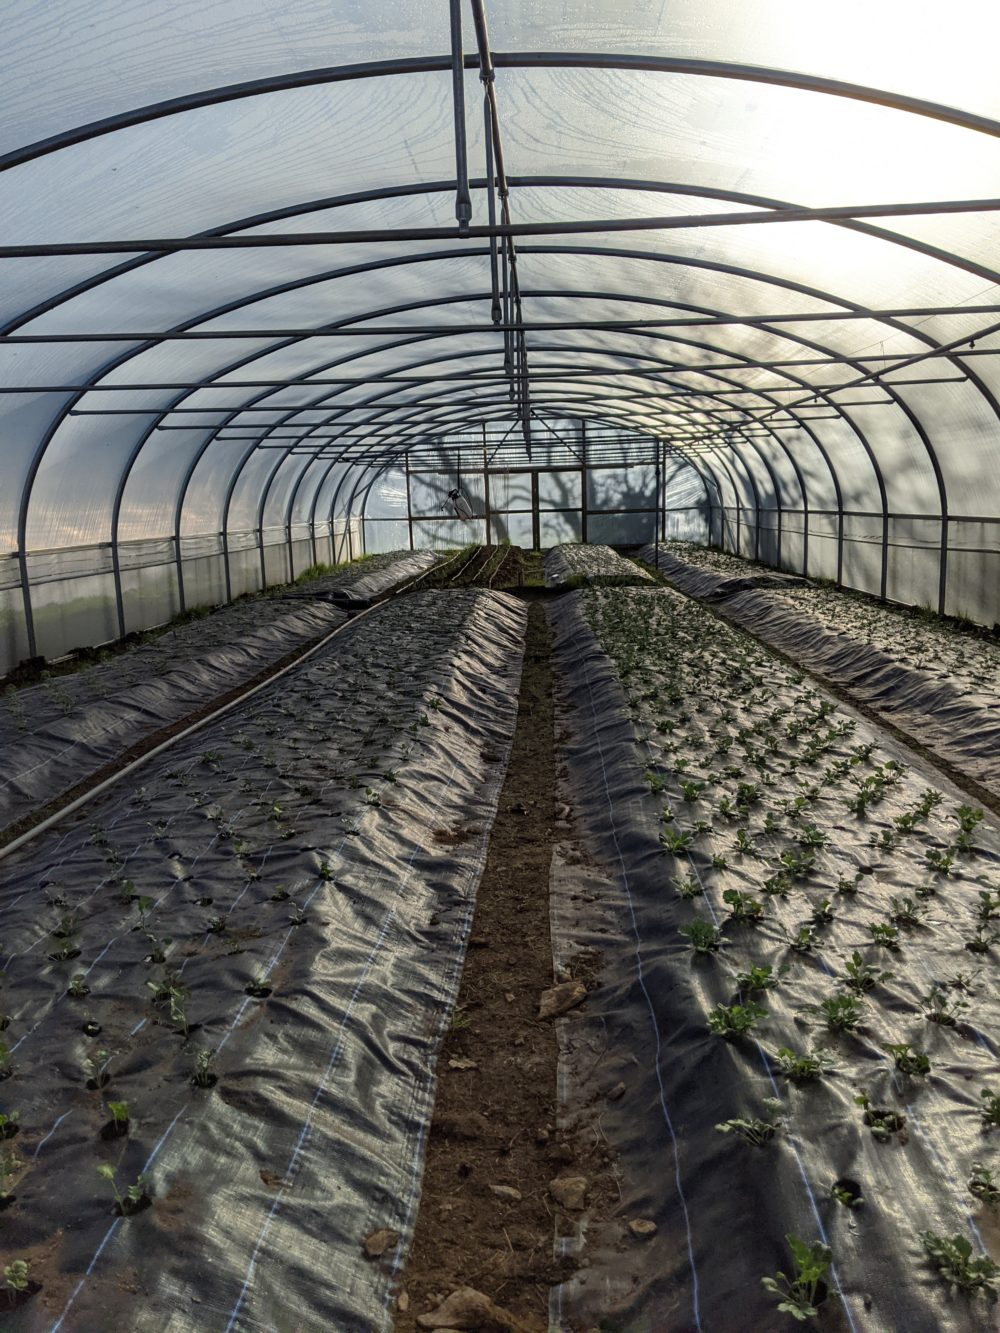 Still just seedlings but one polytunnel is now full.